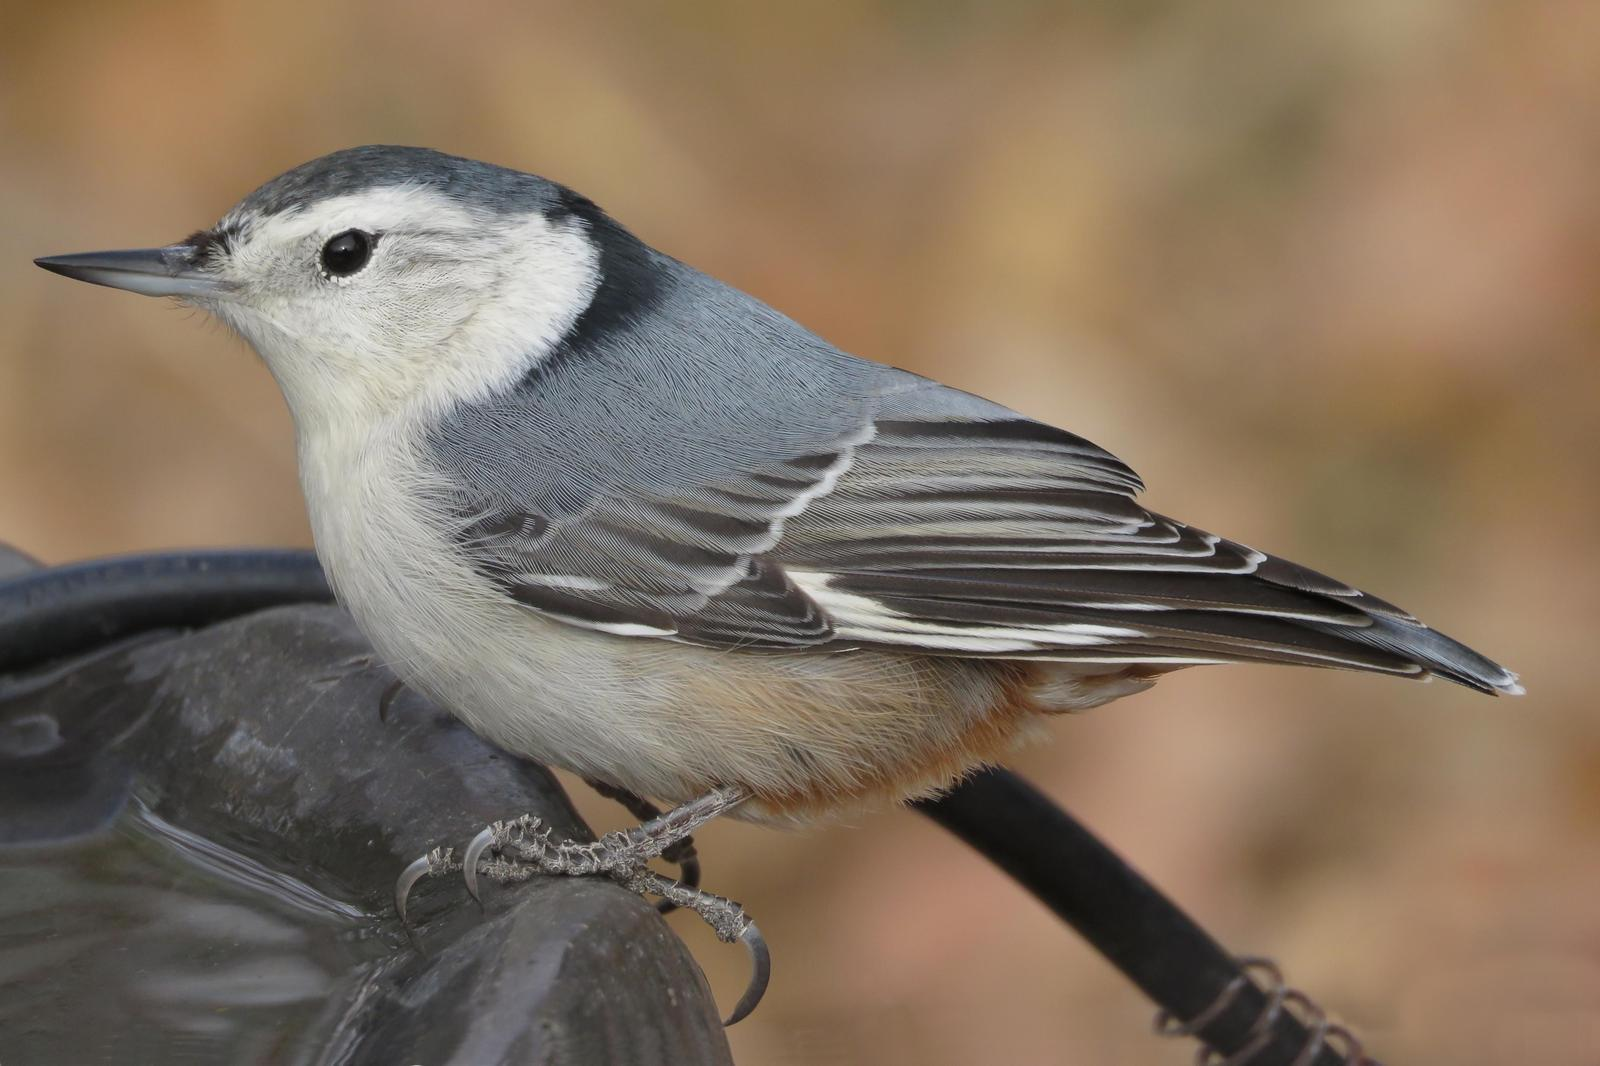 White-breasted Nuthatch Photo by Bob Neugebauer